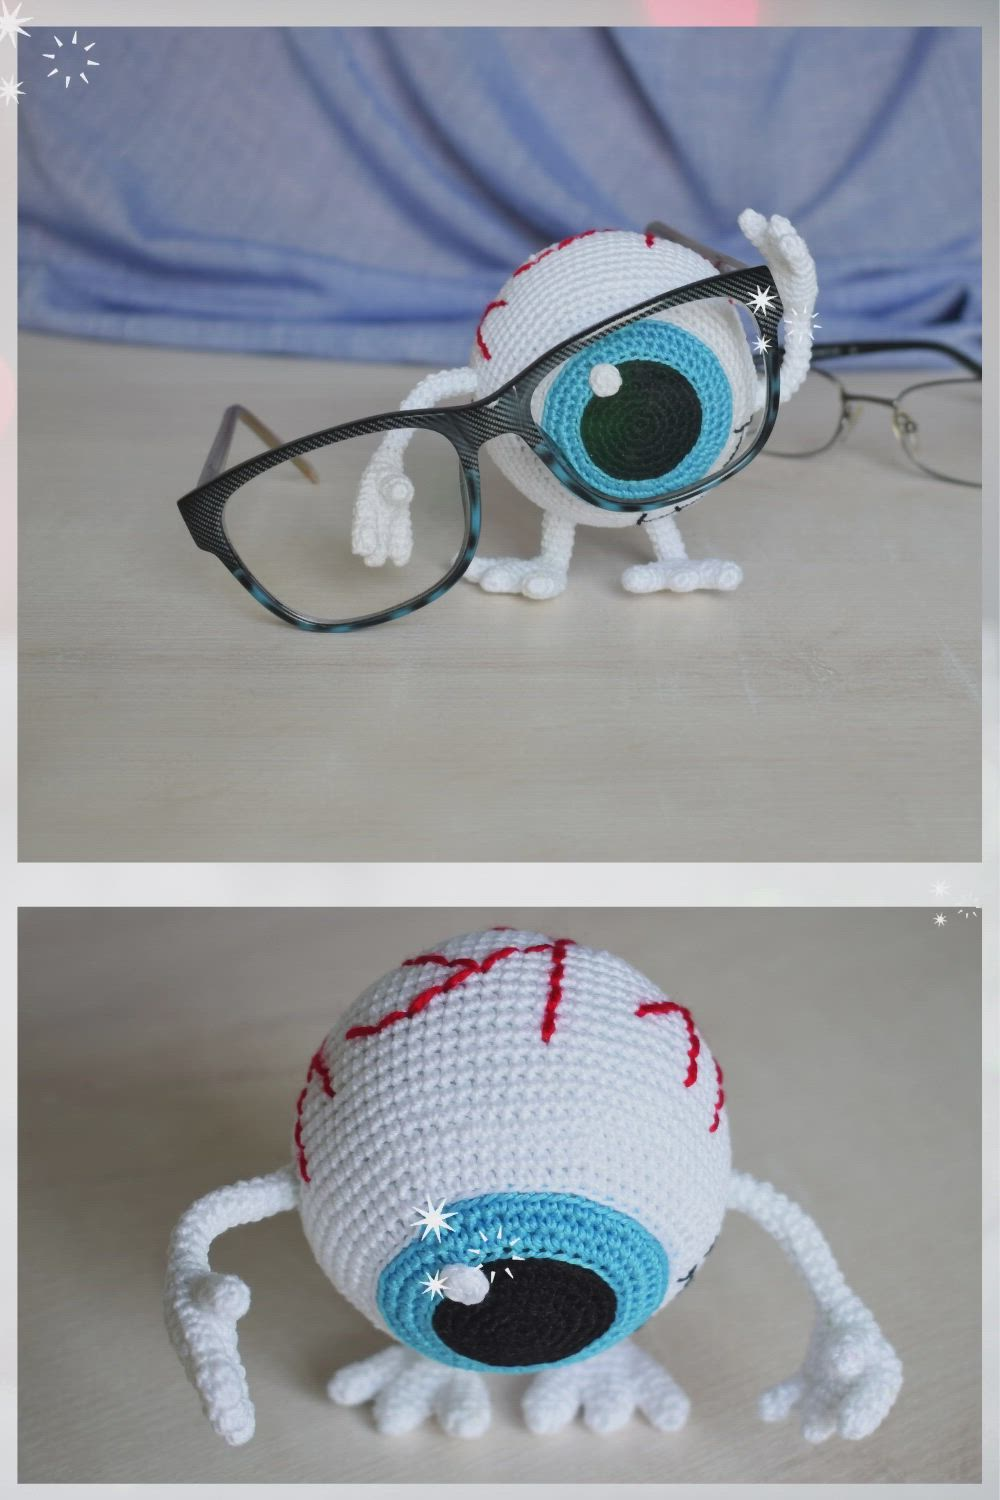 Funny Gifts Optometrist Co Worker Gift Ophthalmologist Etsy Video Video Medical Student Gift Gifts For Coworkers Gifts